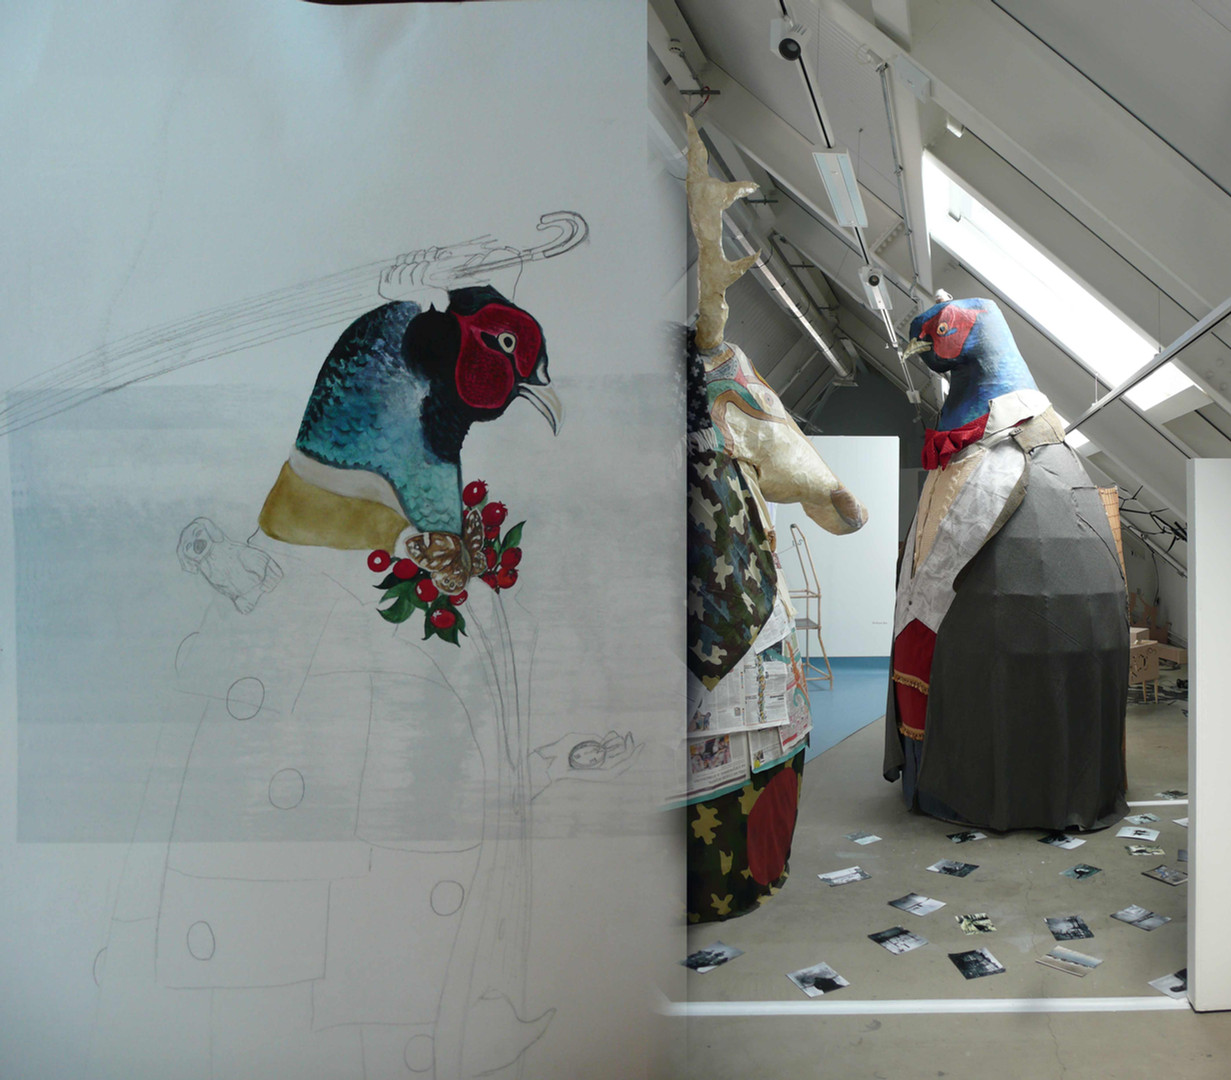 From drawing to installation